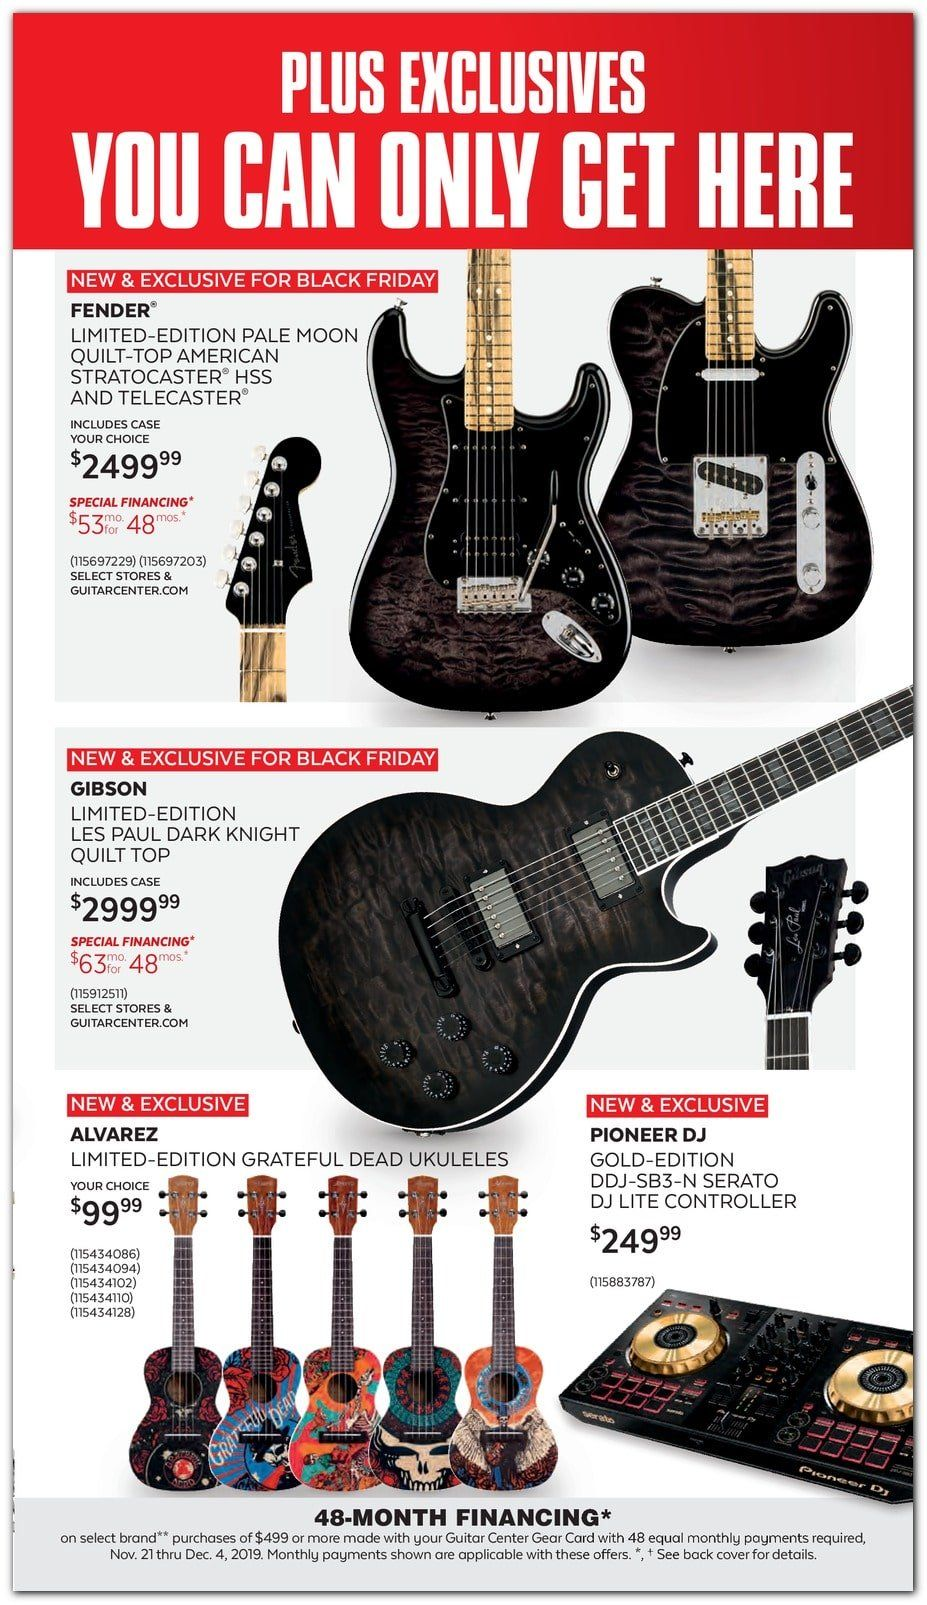 Guitar Black Friday Deals 2020 Guitar Ads Offers Sale Black Friday Black Friday Ads Guitar